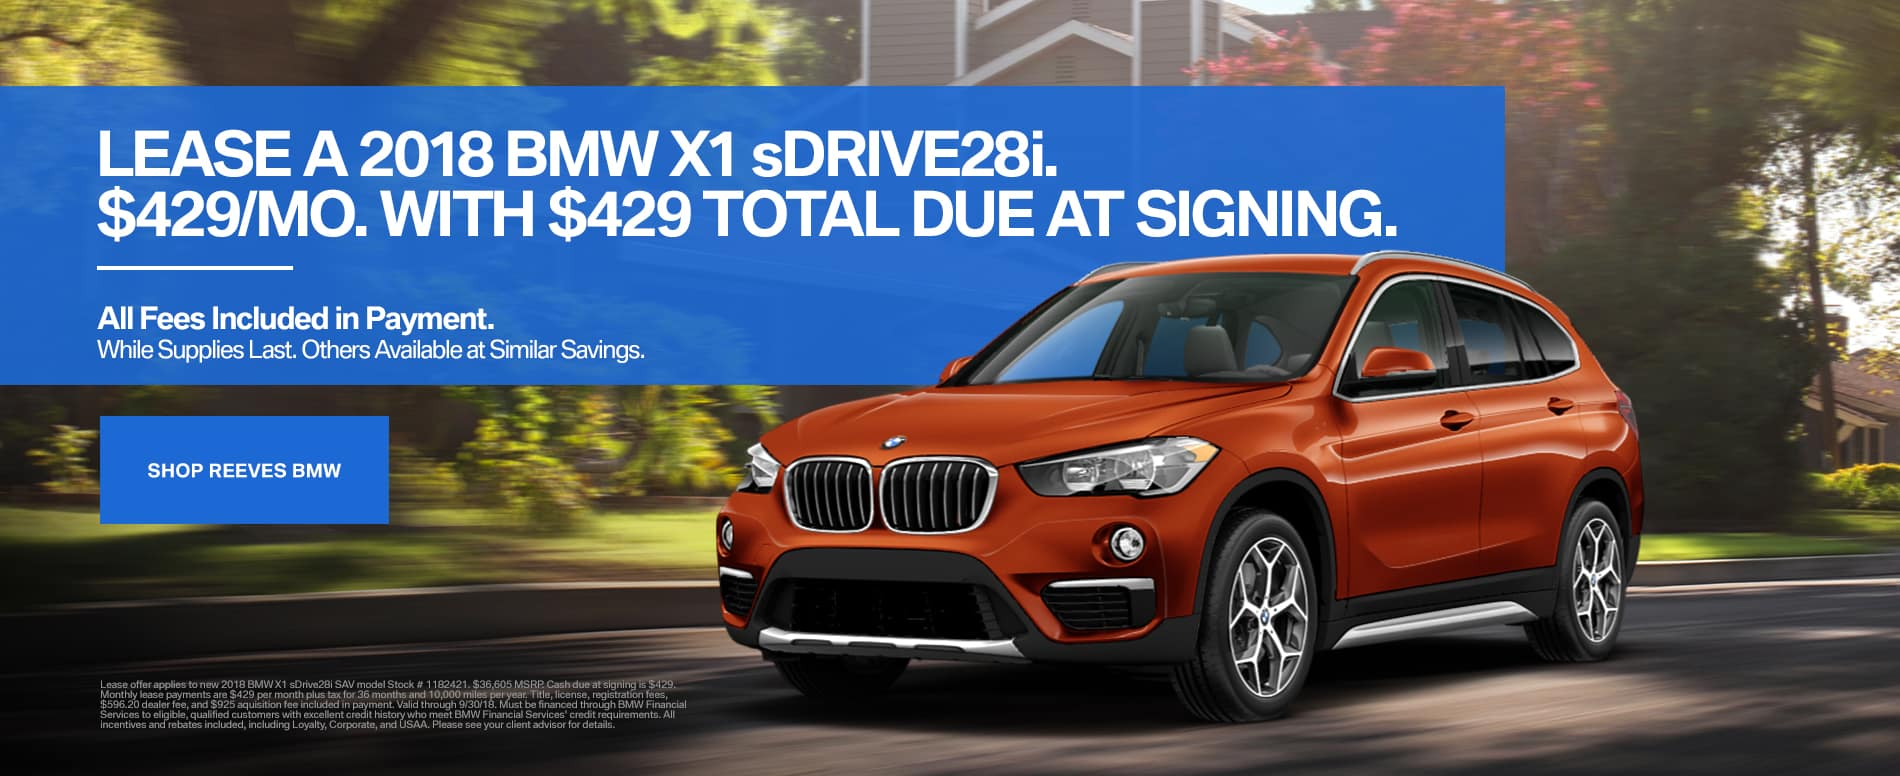 September BMW X1 Lease Special